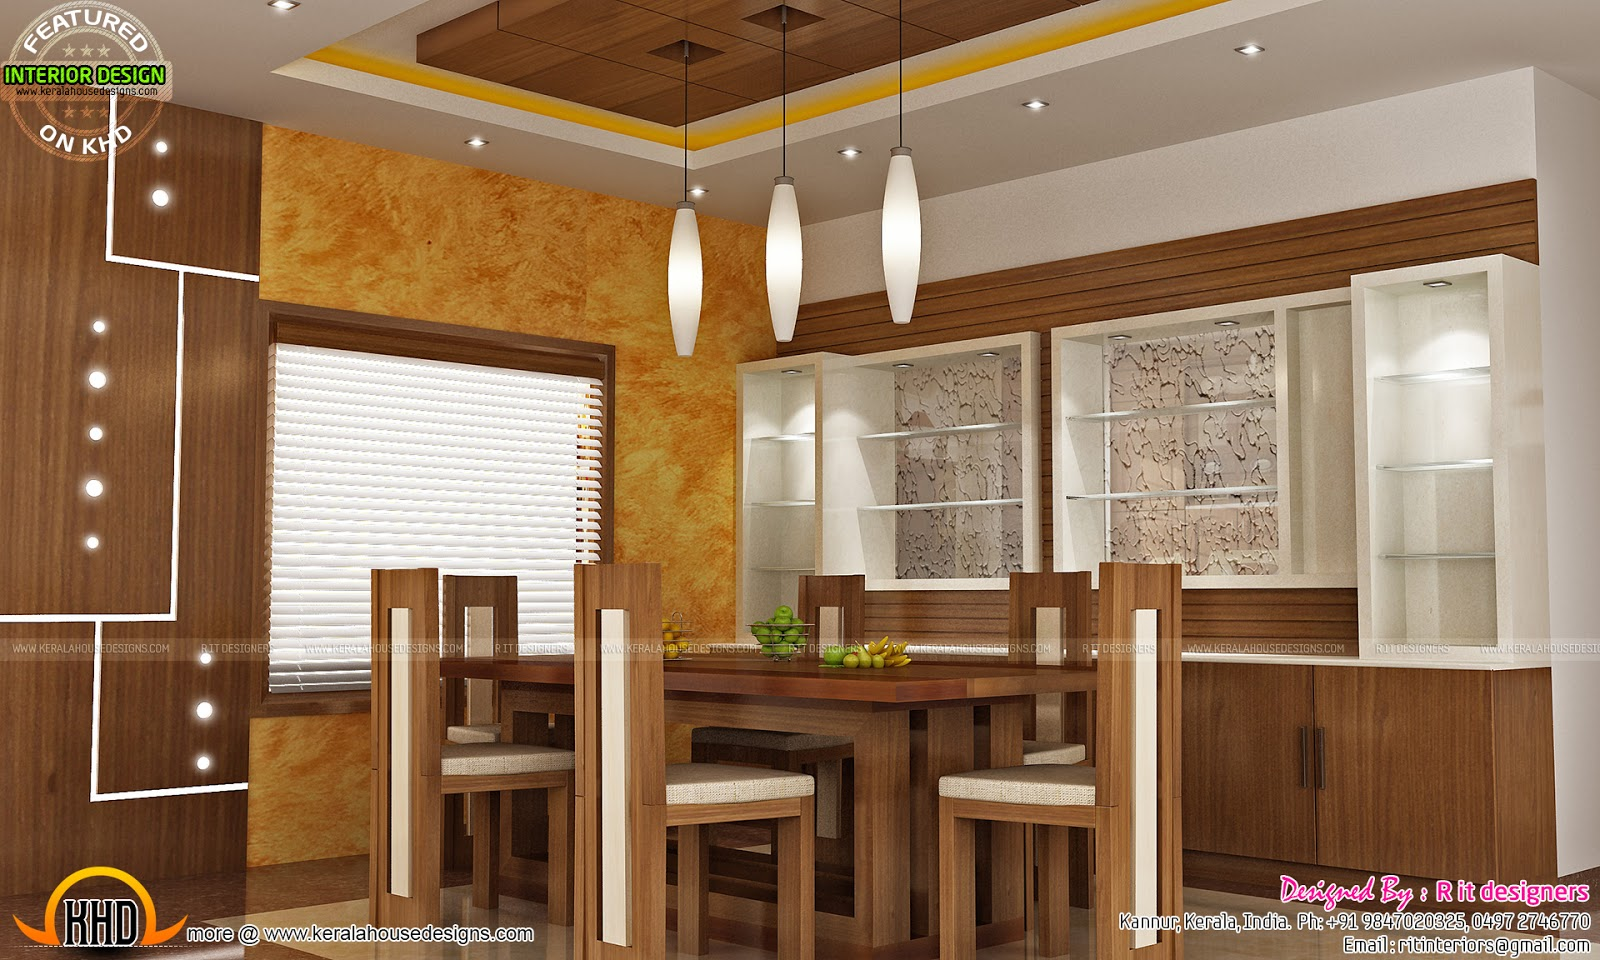 Modular kitchen dining and bedroom interior  Kerala home